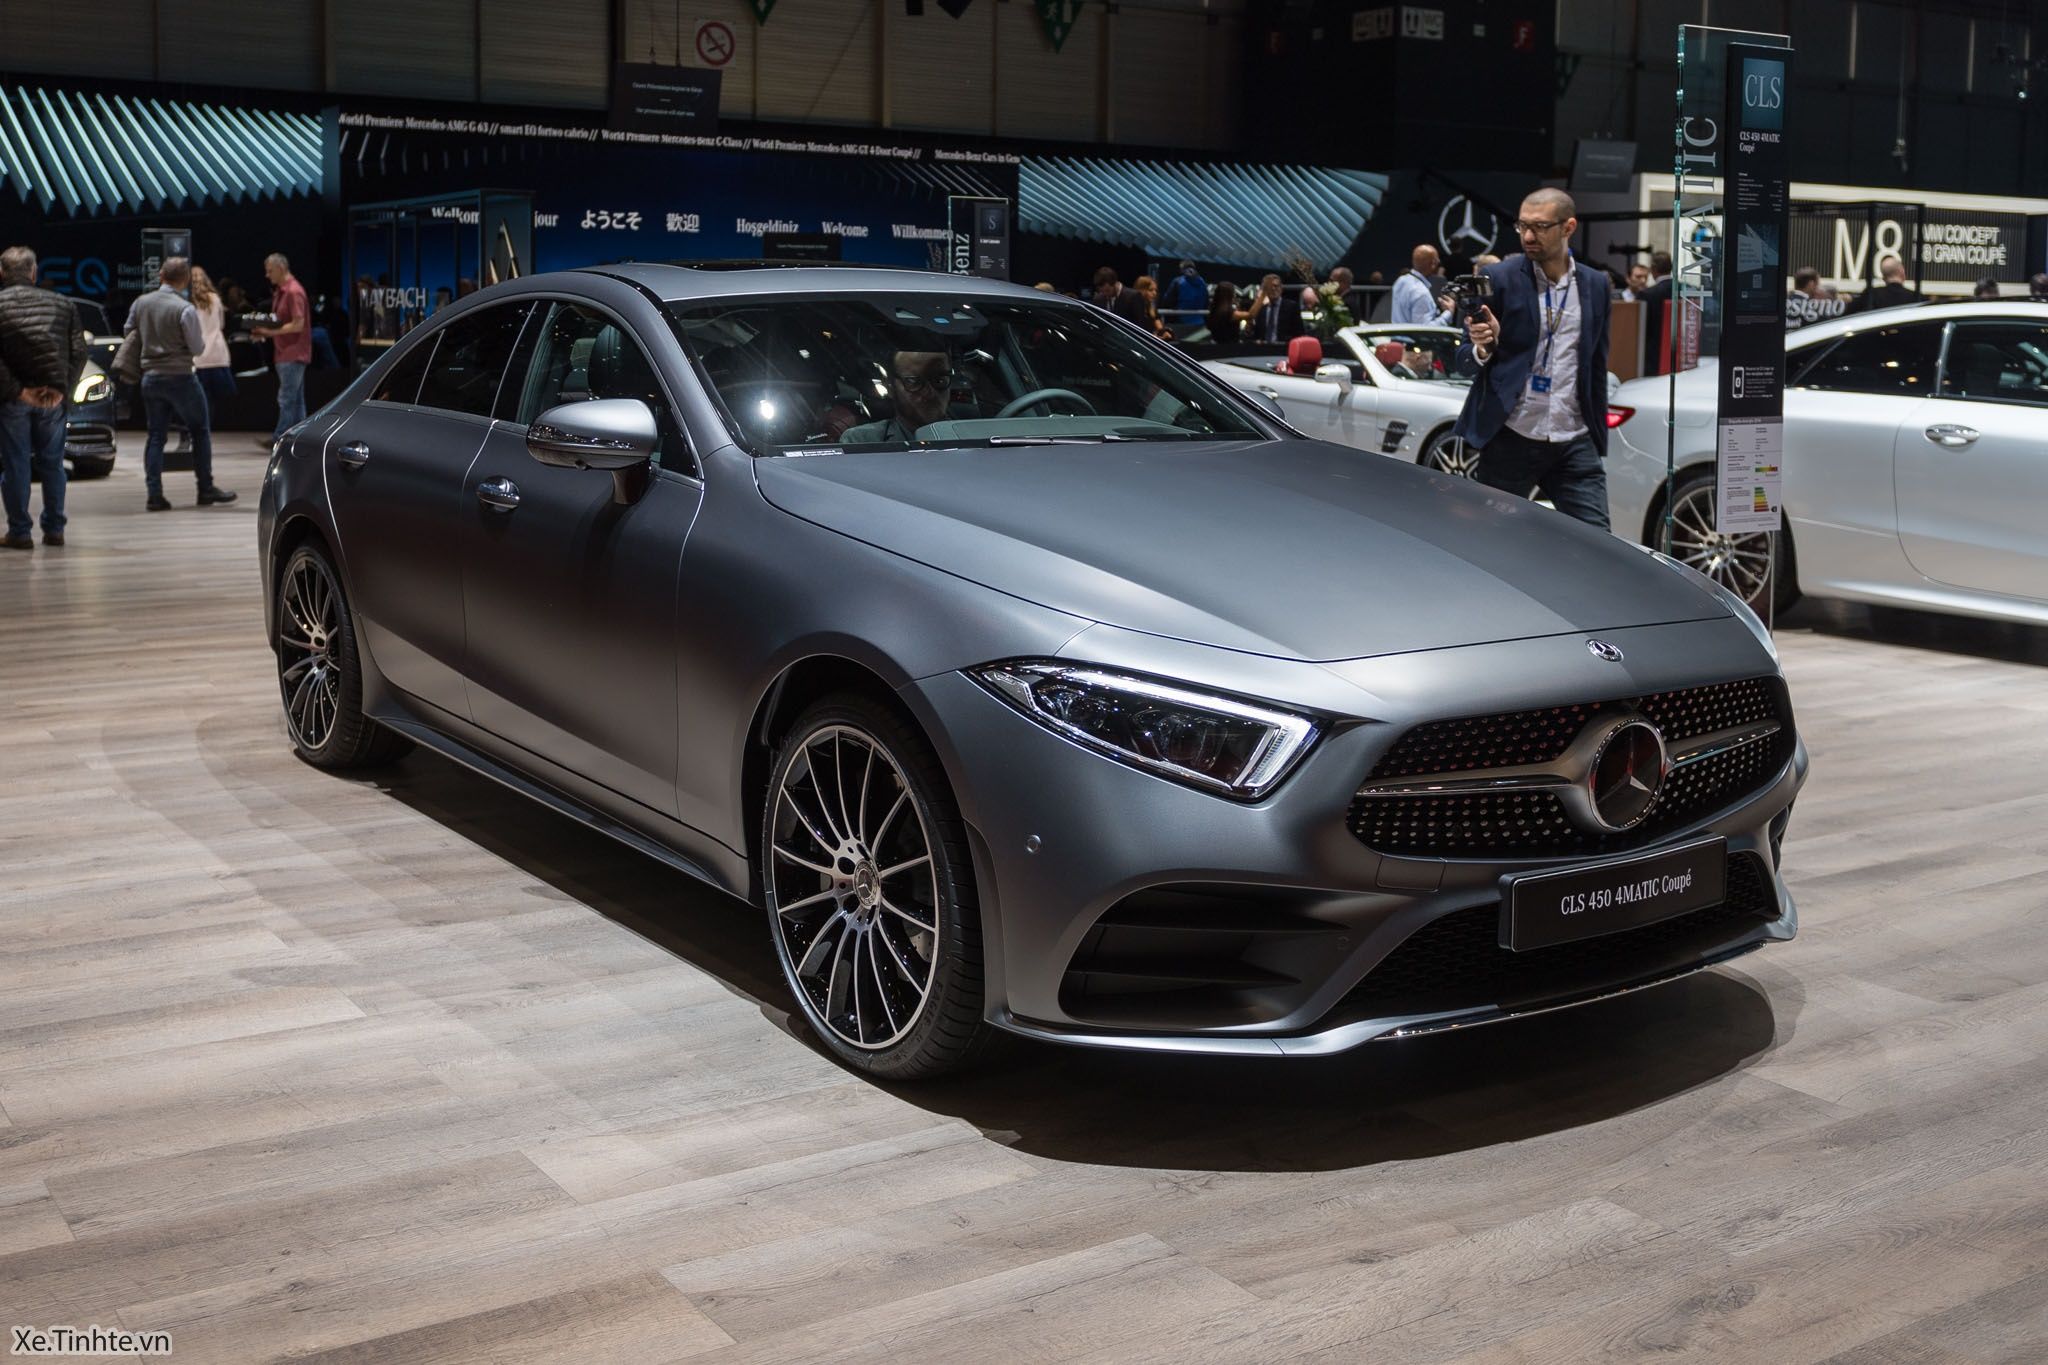 Mercedes_CLS_450_4MATIC_Coupe_Xe_Tinhte-003.jpg